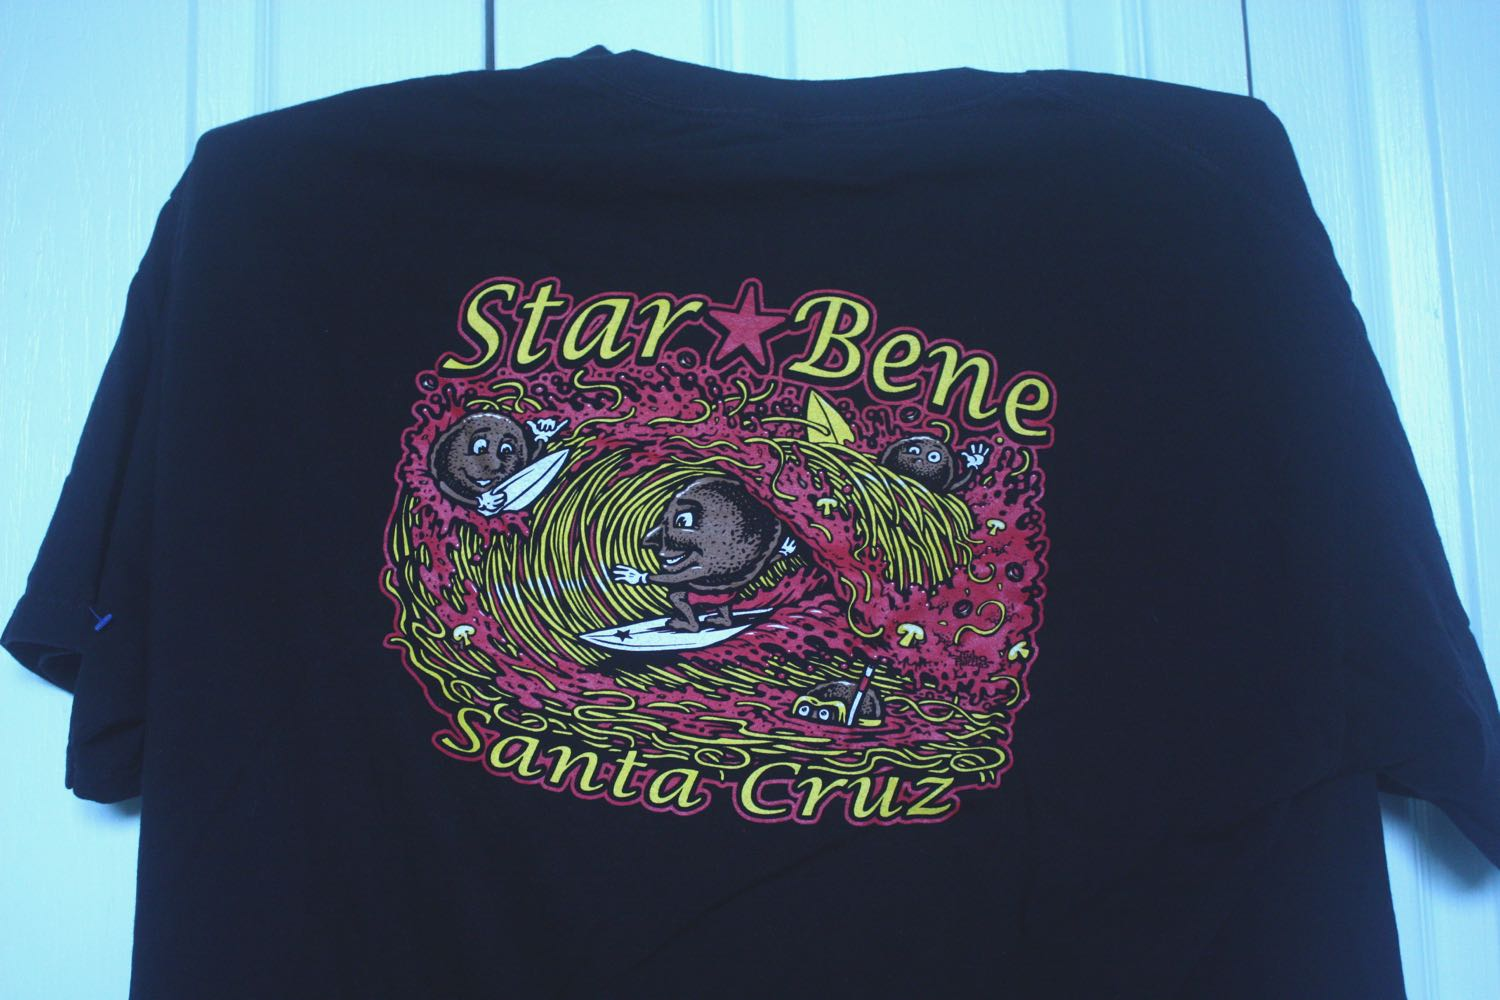 Santa Cruz Star Bene Restaurant Tee by Jimbo Phillips